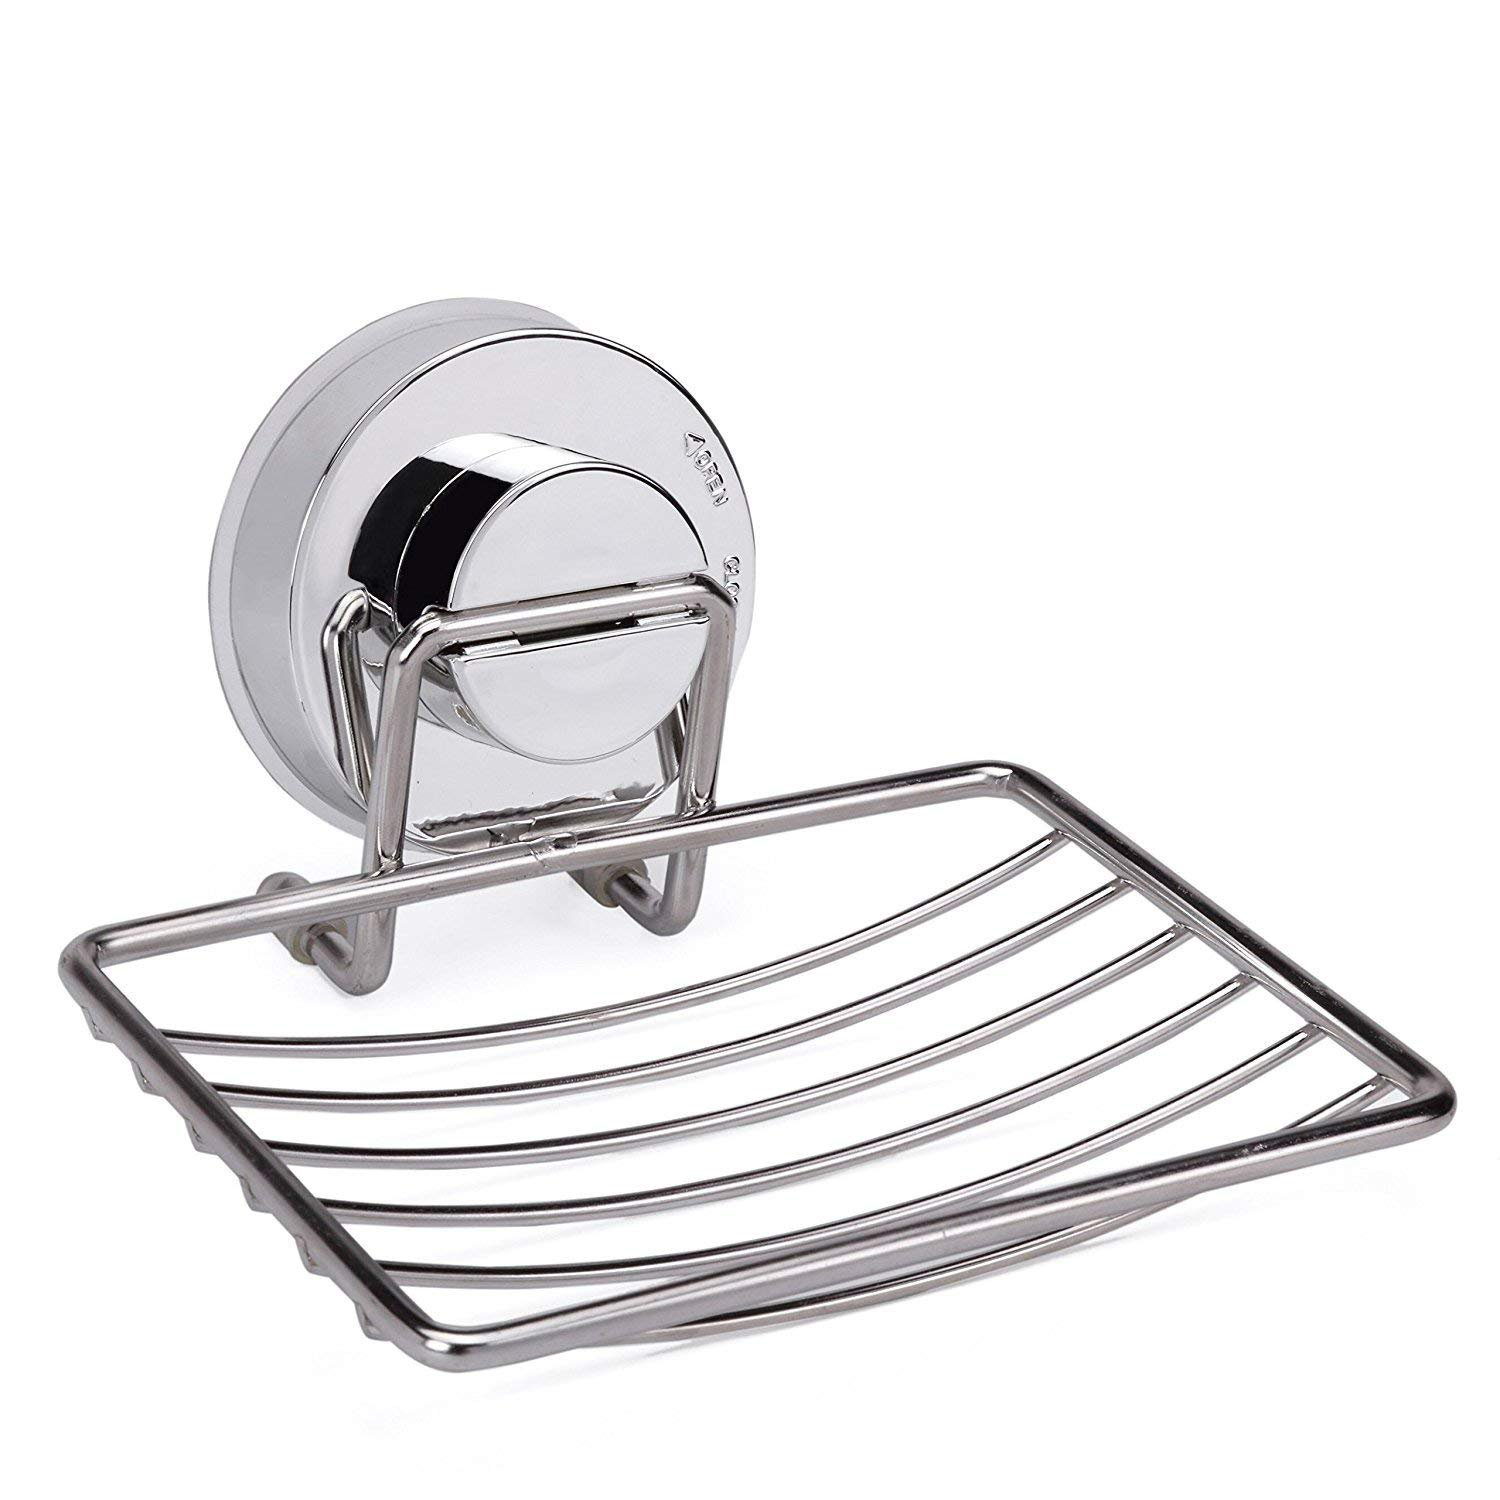 Kytree Suction Soap Dish Holder for Shower Bathroom Tub and Kitchen Sink Stainless Steel Bar Soap Holder Saver Tray